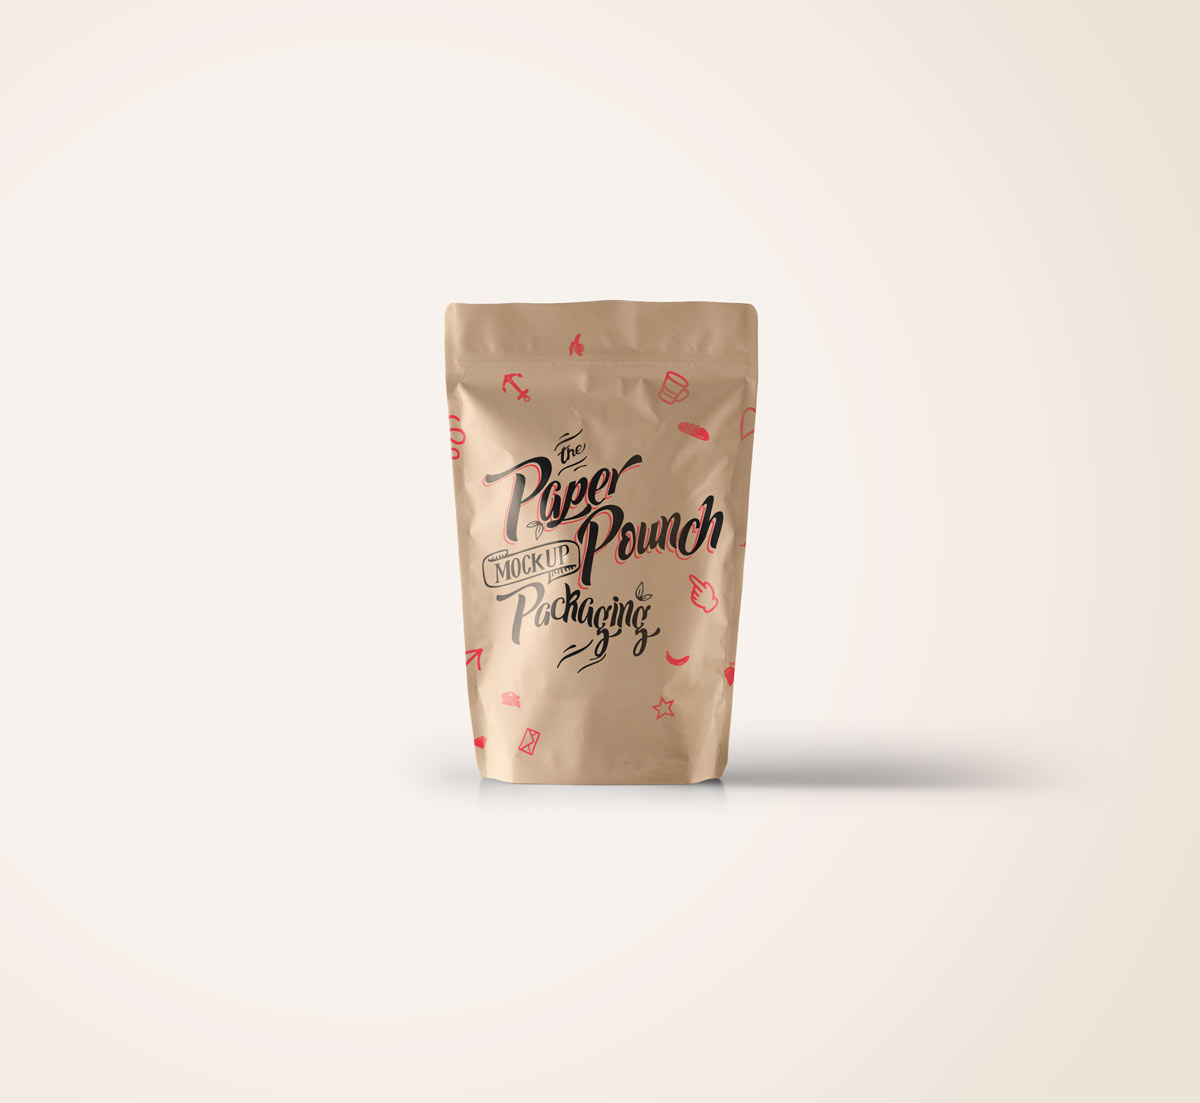 Paper-Pouch-Packaging-Mockup-Vol4